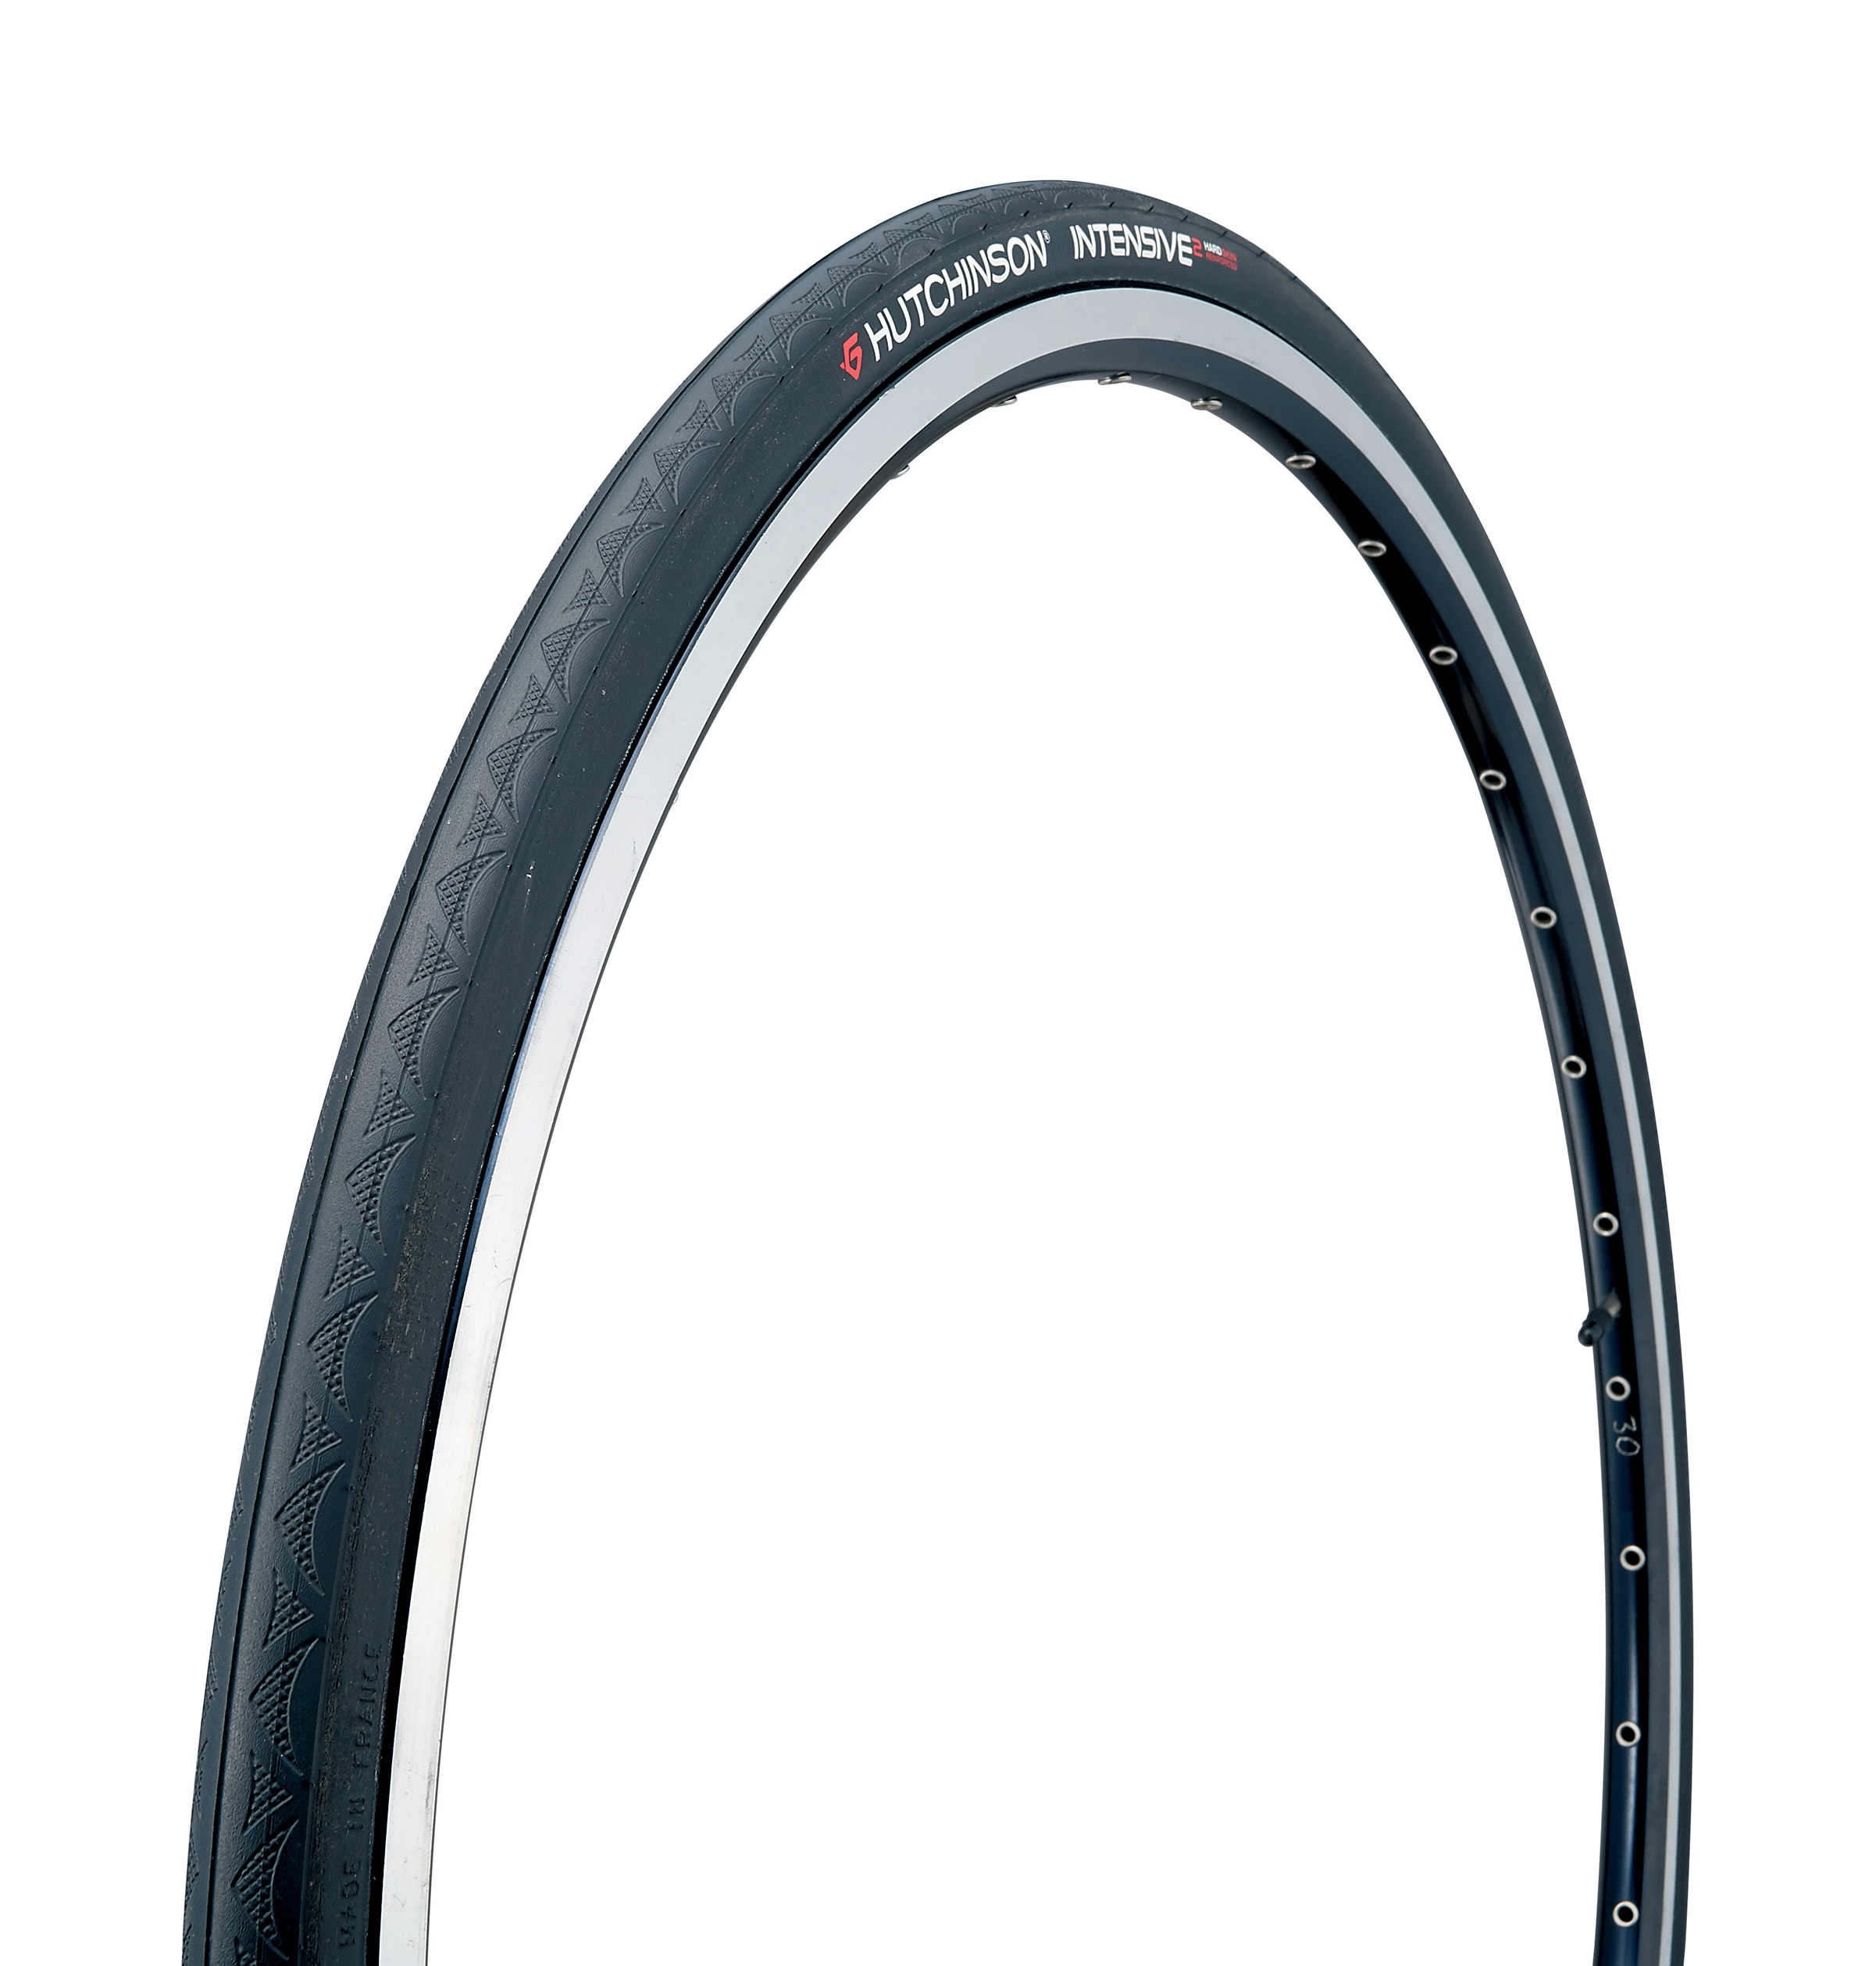 Hutchinson-Intensive-2-Road-Tyre-Tubeless-700-25-Tl